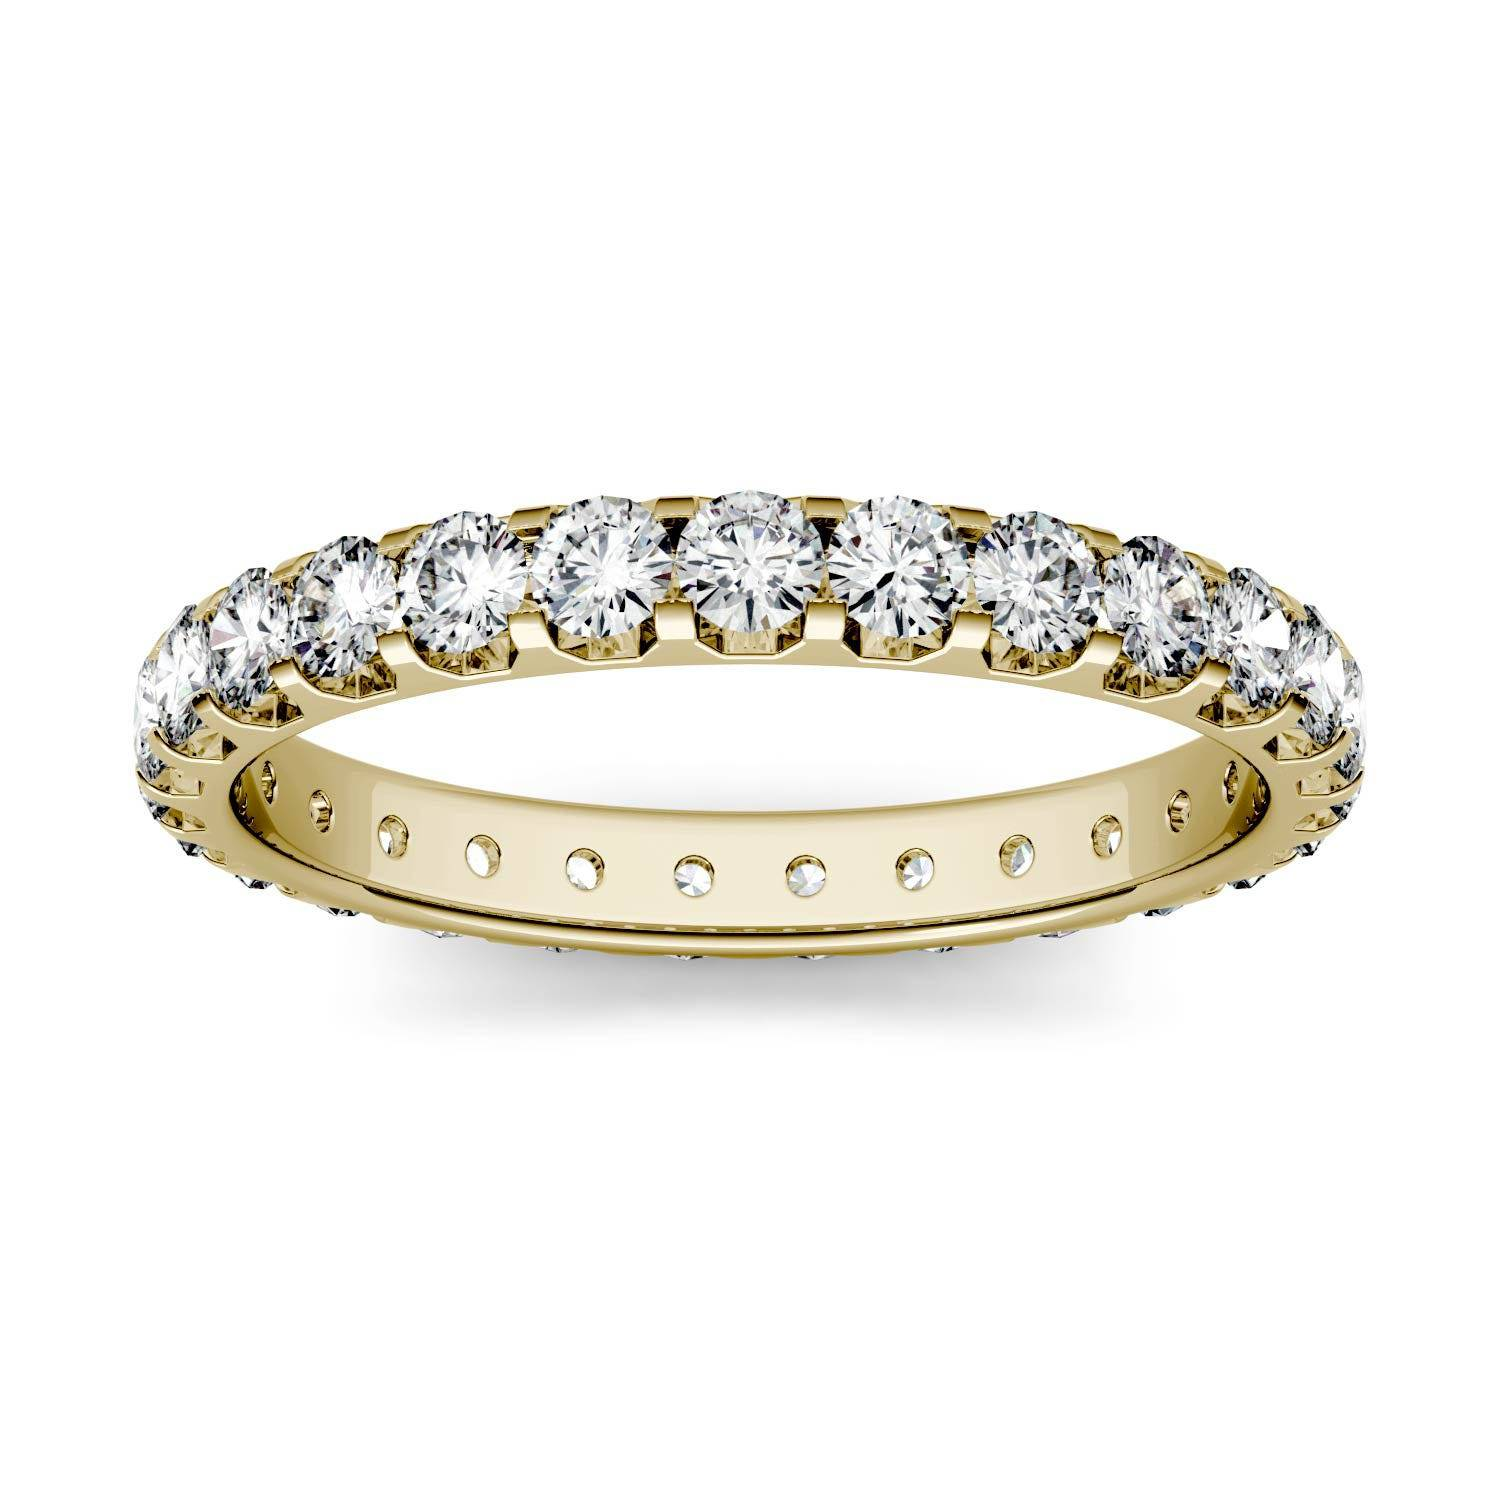 Charles & Colvard Eternity Band Wedding Ring in 14K Yellow Gold, Size: 9, 1.00CTW Round Forever One Moissanite Accent Stones Charles & Colvard  - Yellow Gold - Size: 9